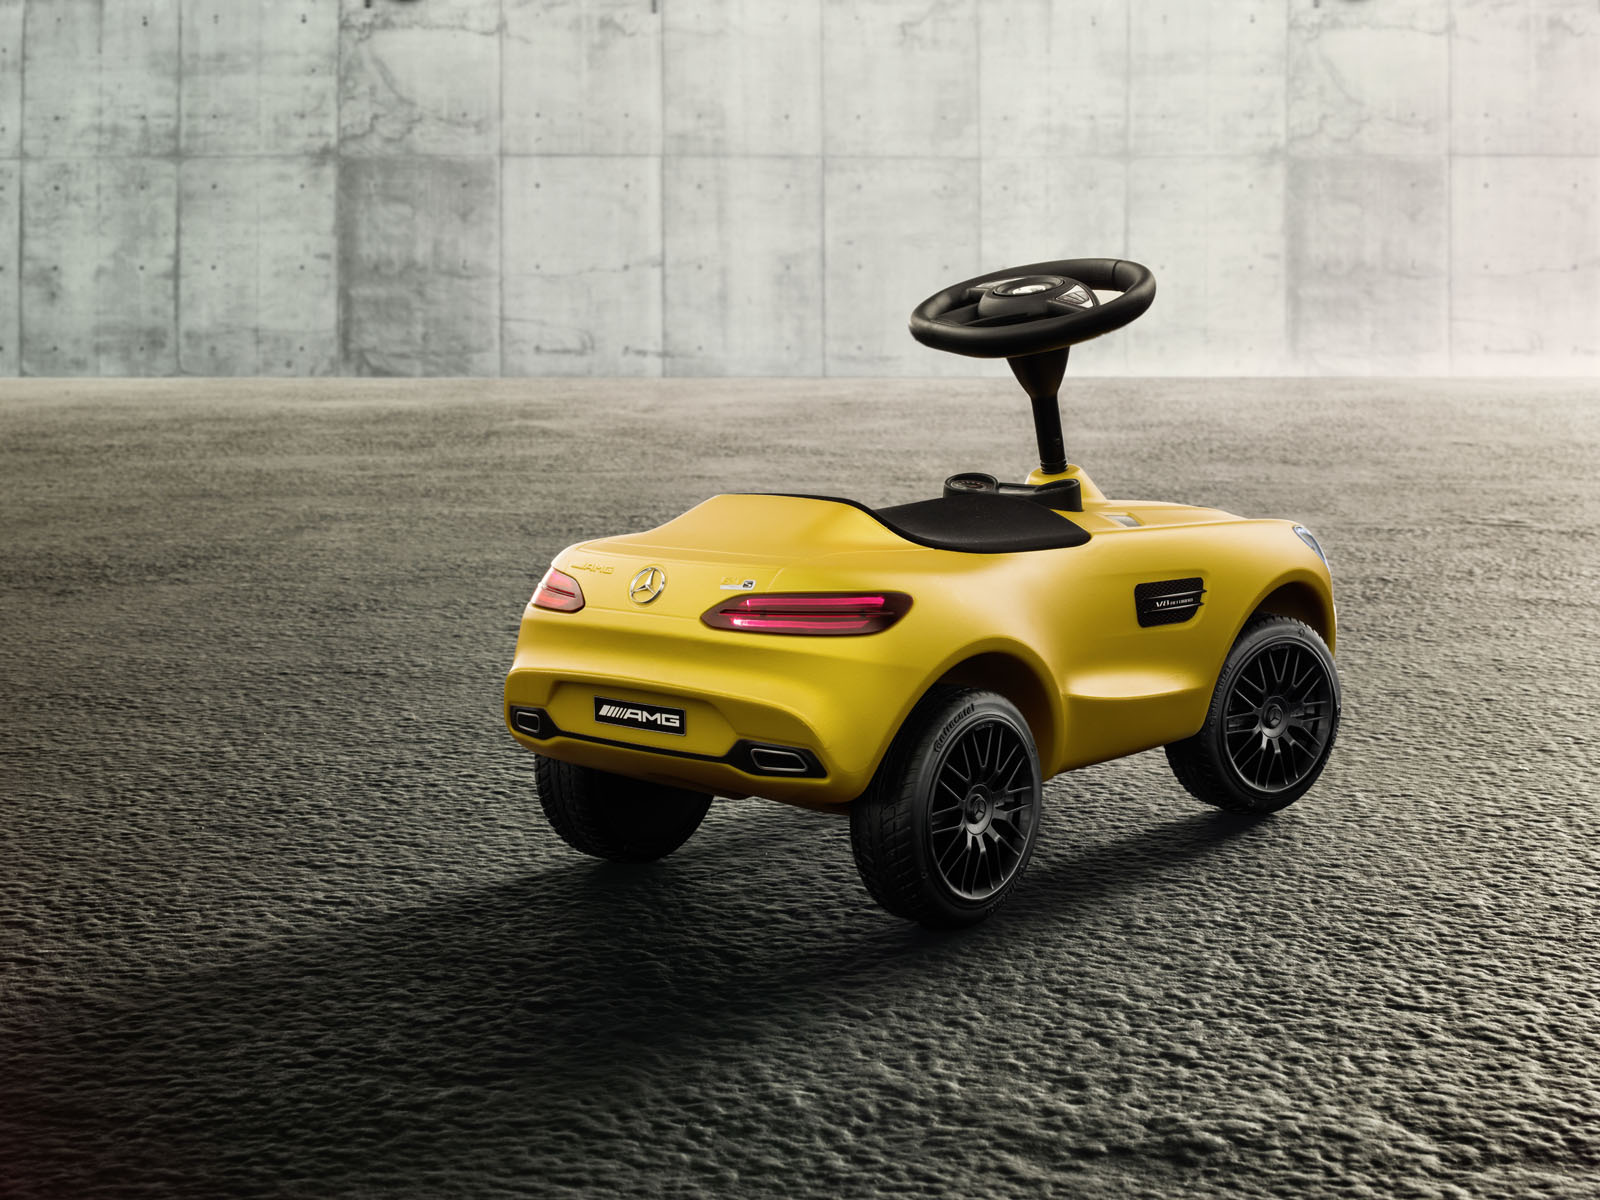 mercedes amg gt shrinks down to kid size as new bobby car. Black Bedroom Furniture Sets. Home Design Ideas